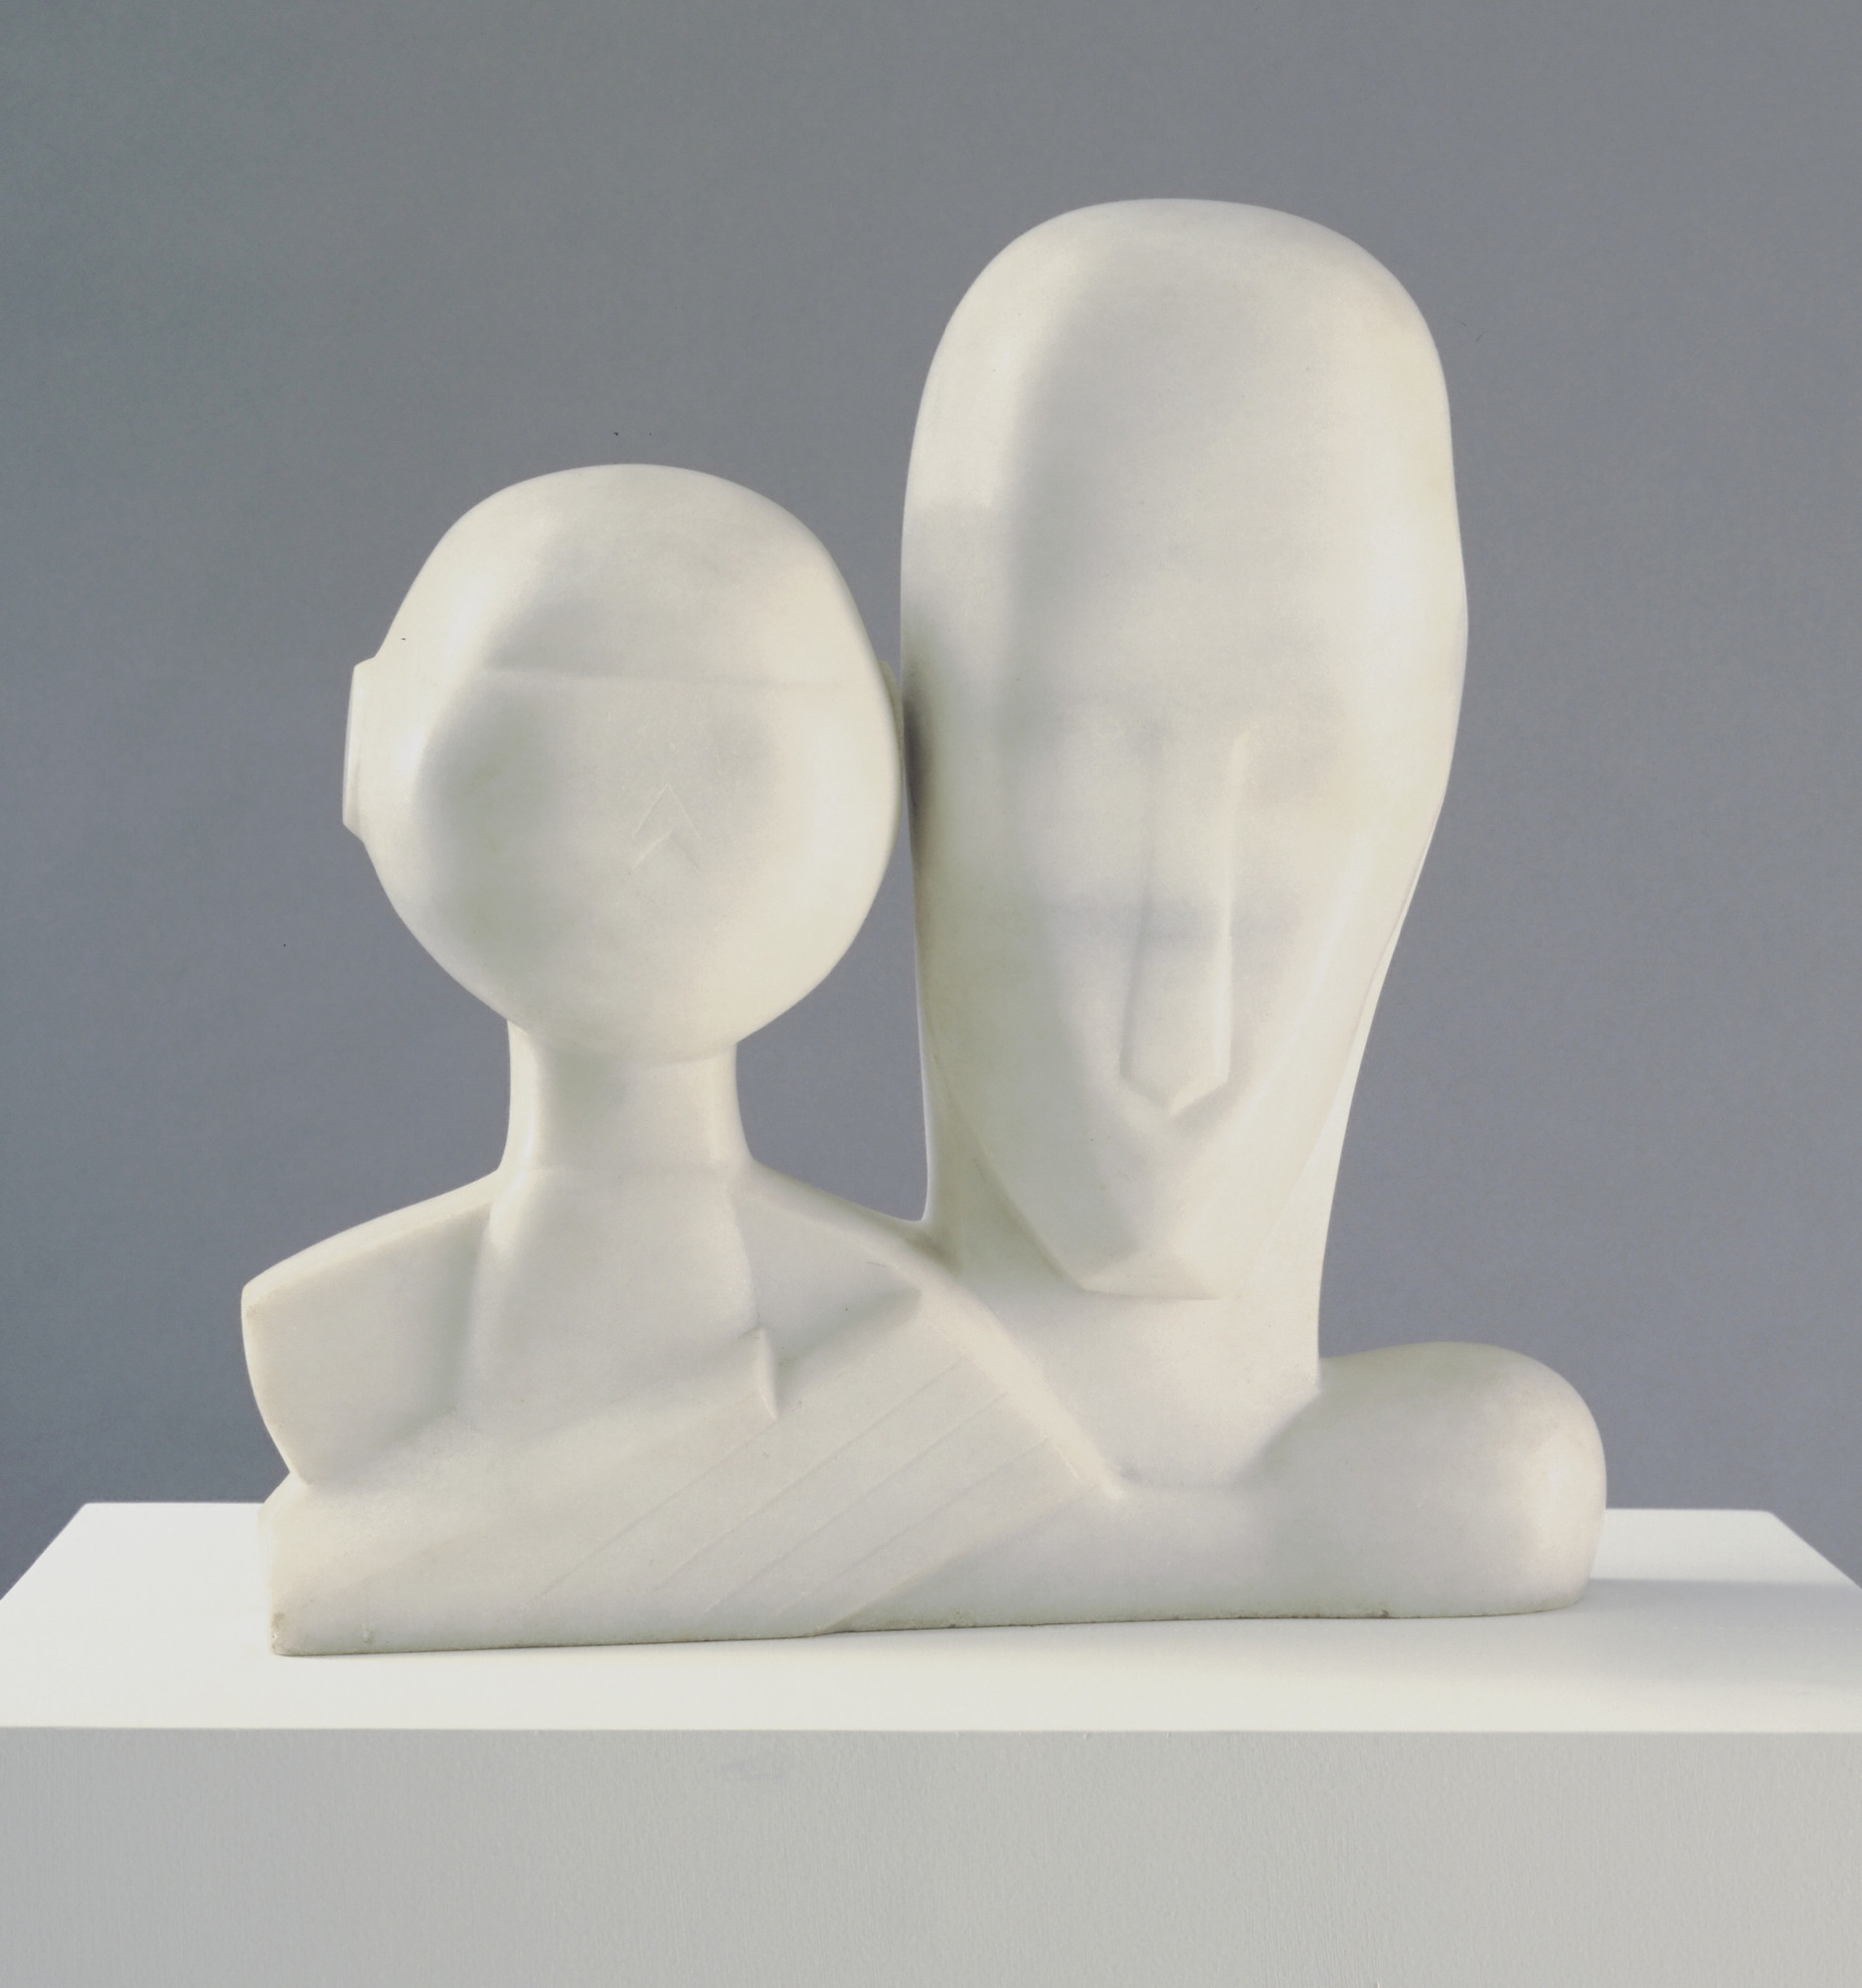 Jacob Epstein. Mother and Child. 1913